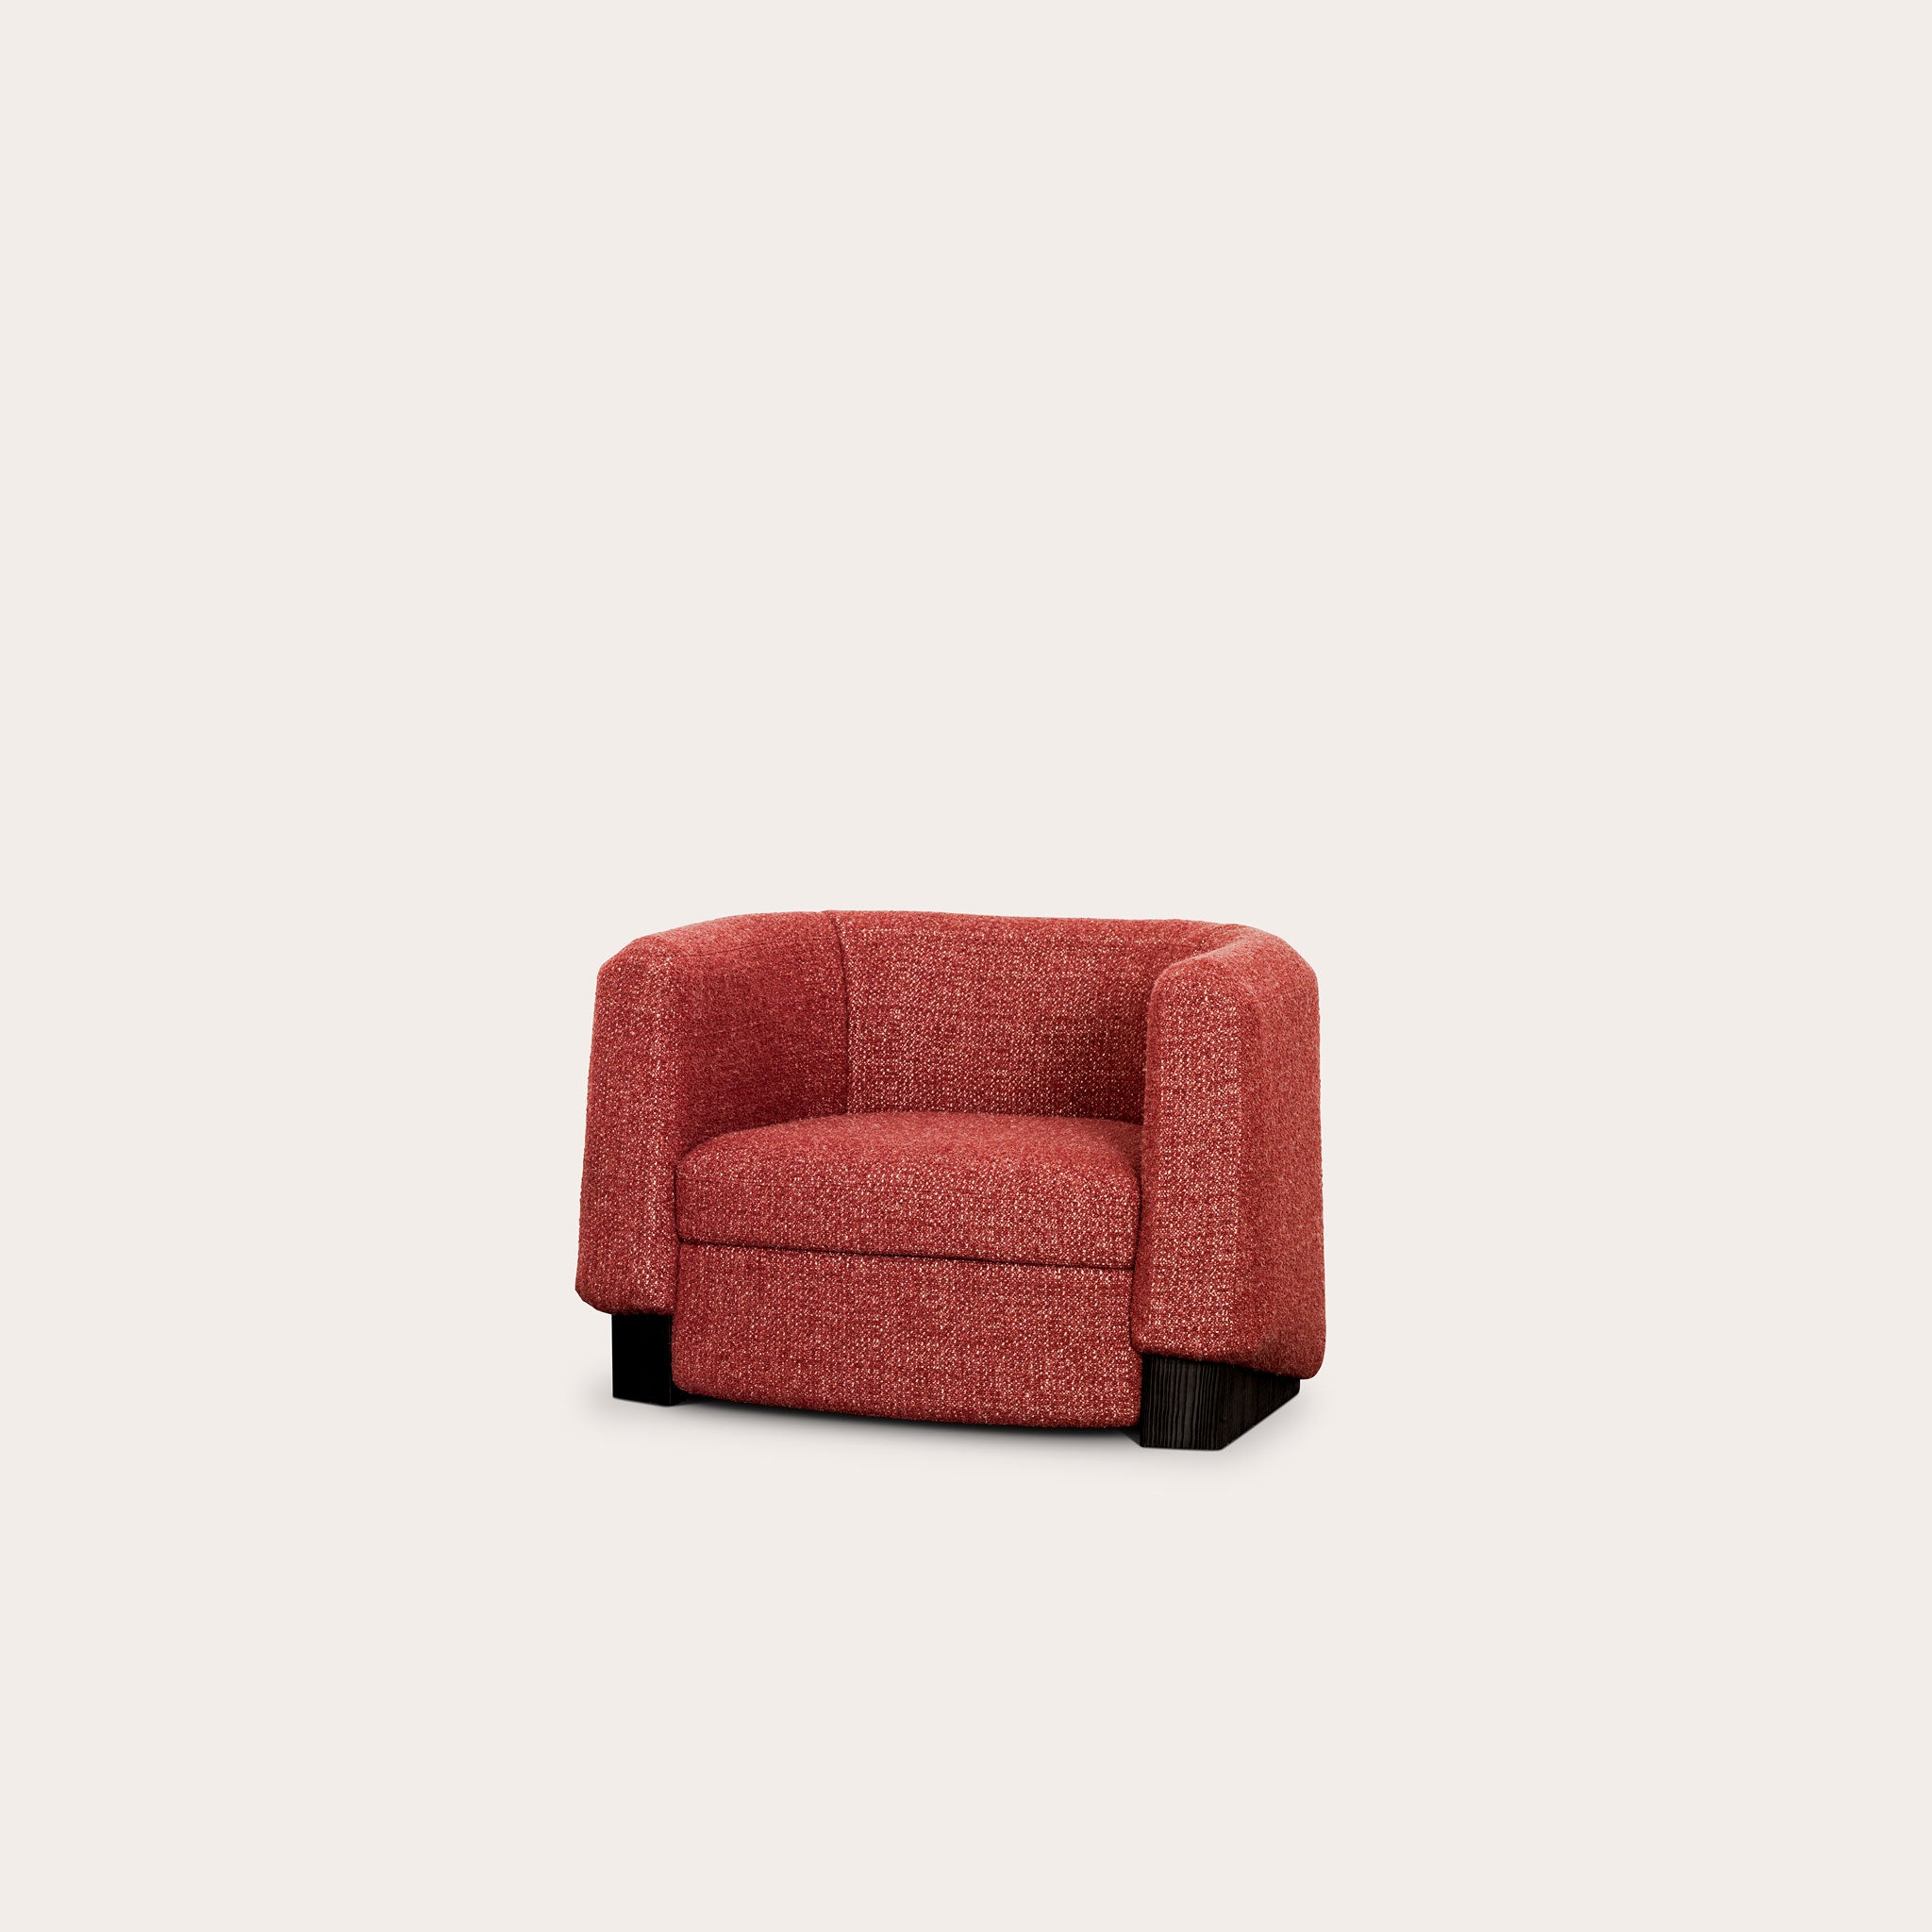 ORR Seating Christophe Delcourt Designer Furniture Sku: 008-240-10238